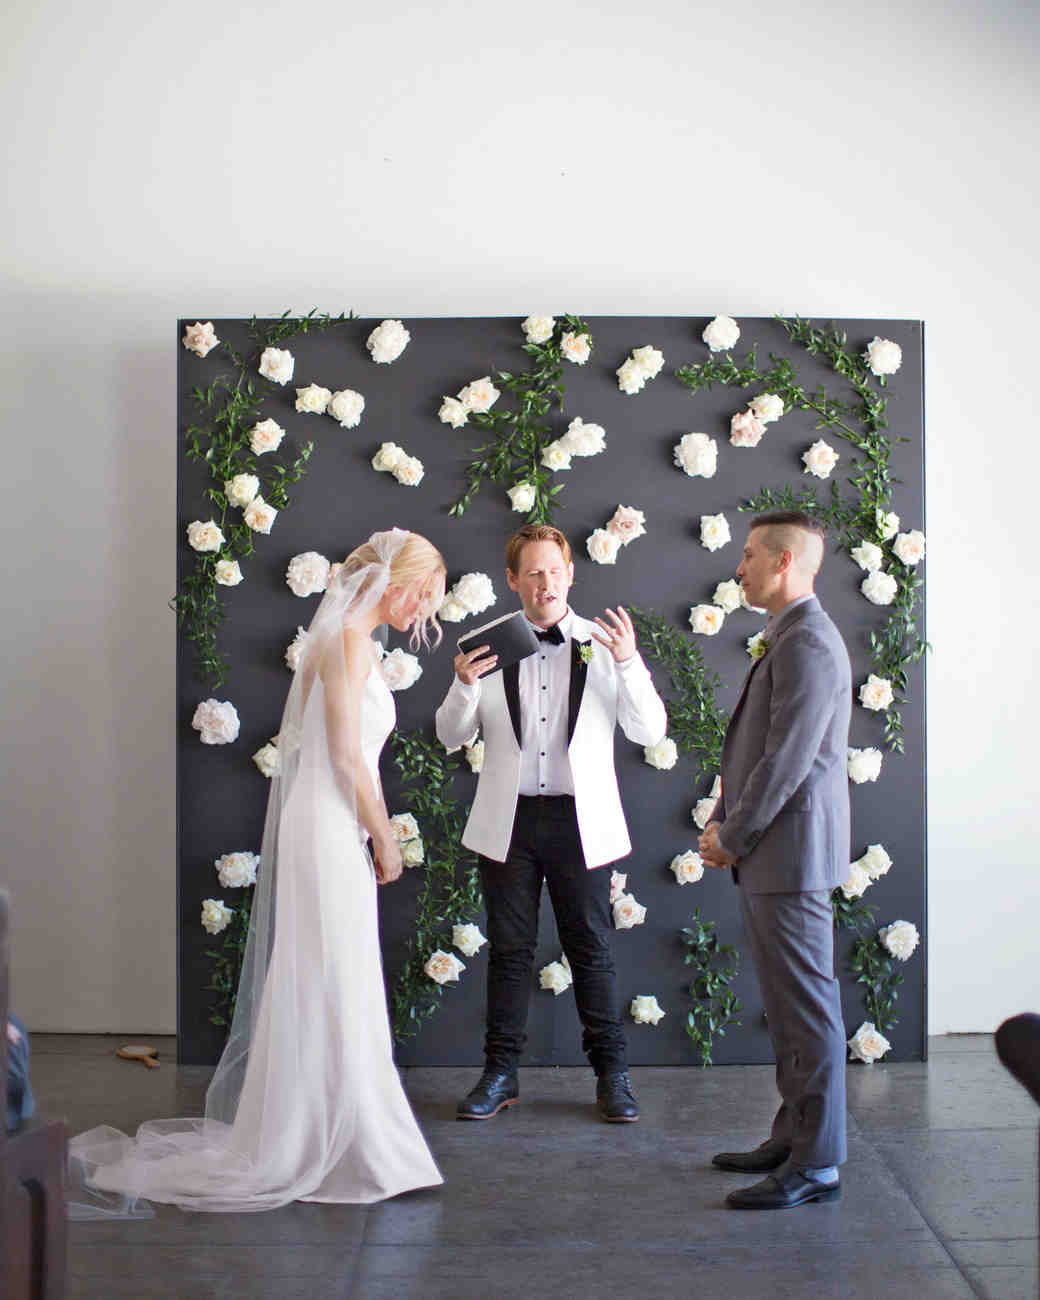 Modern Wedding Backdrop Ideas: Wedding Backdrop Ideas We Love